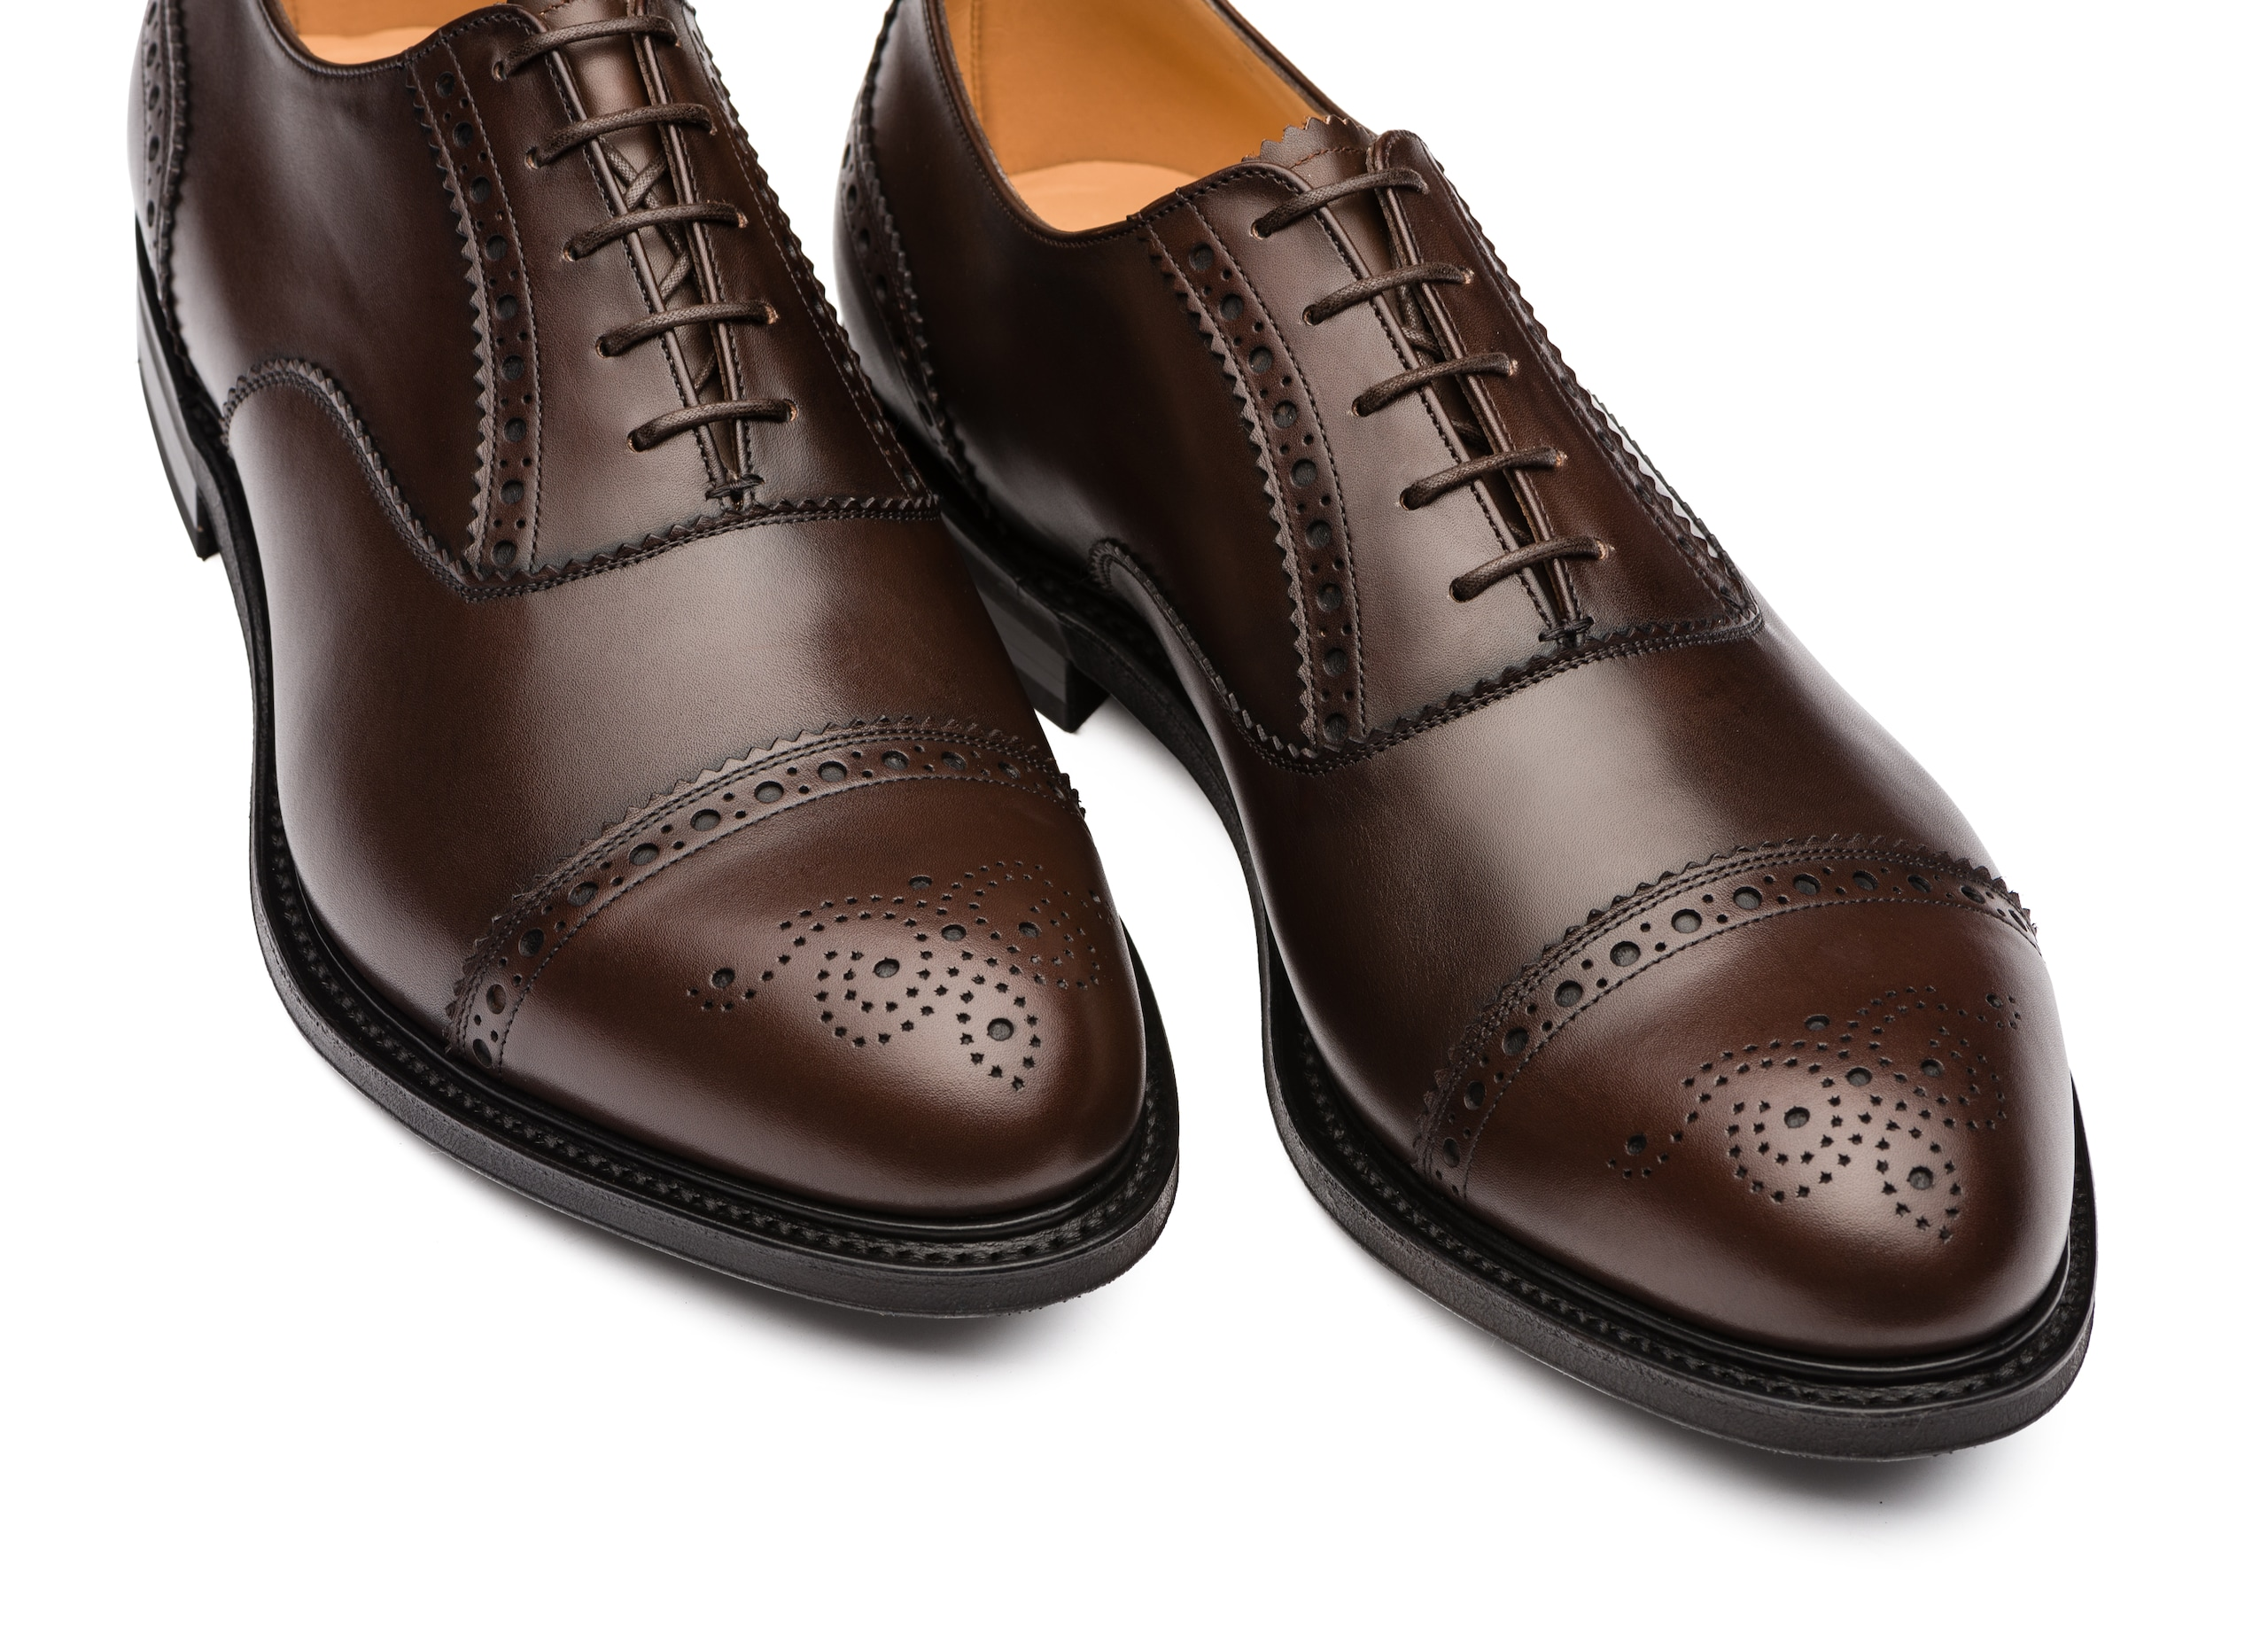 Waltham Church's Richelieu Oxford en Cuir Nevada Marron